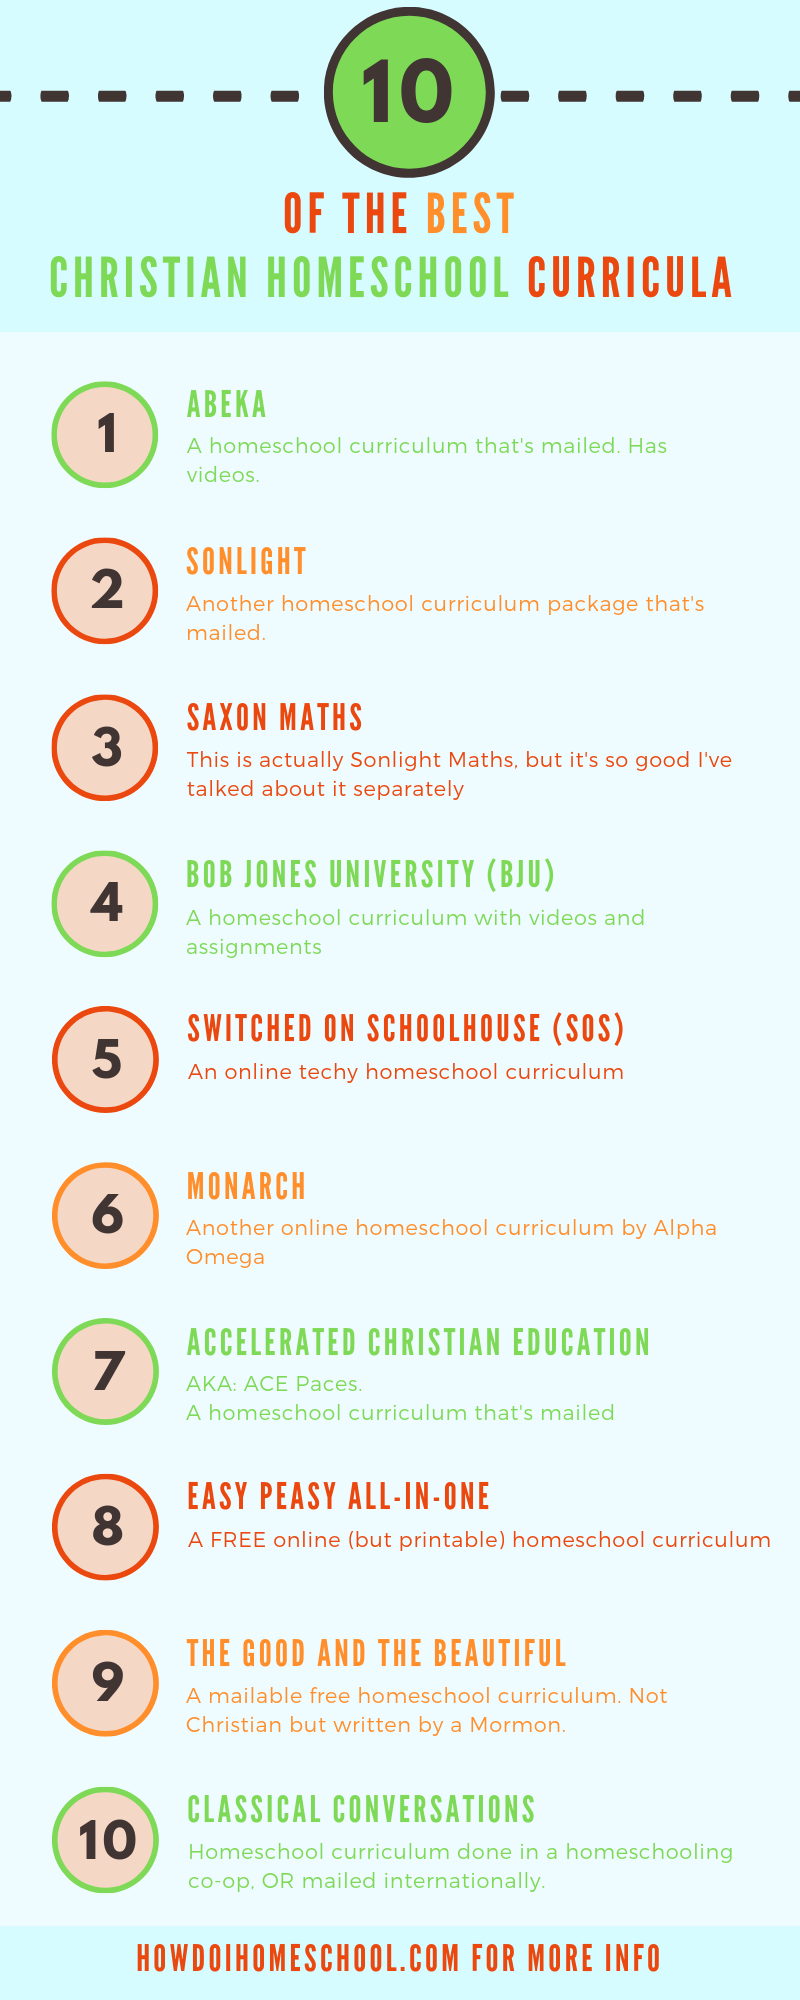 10 of the BEST Christian Homeschool Curriculum Packages